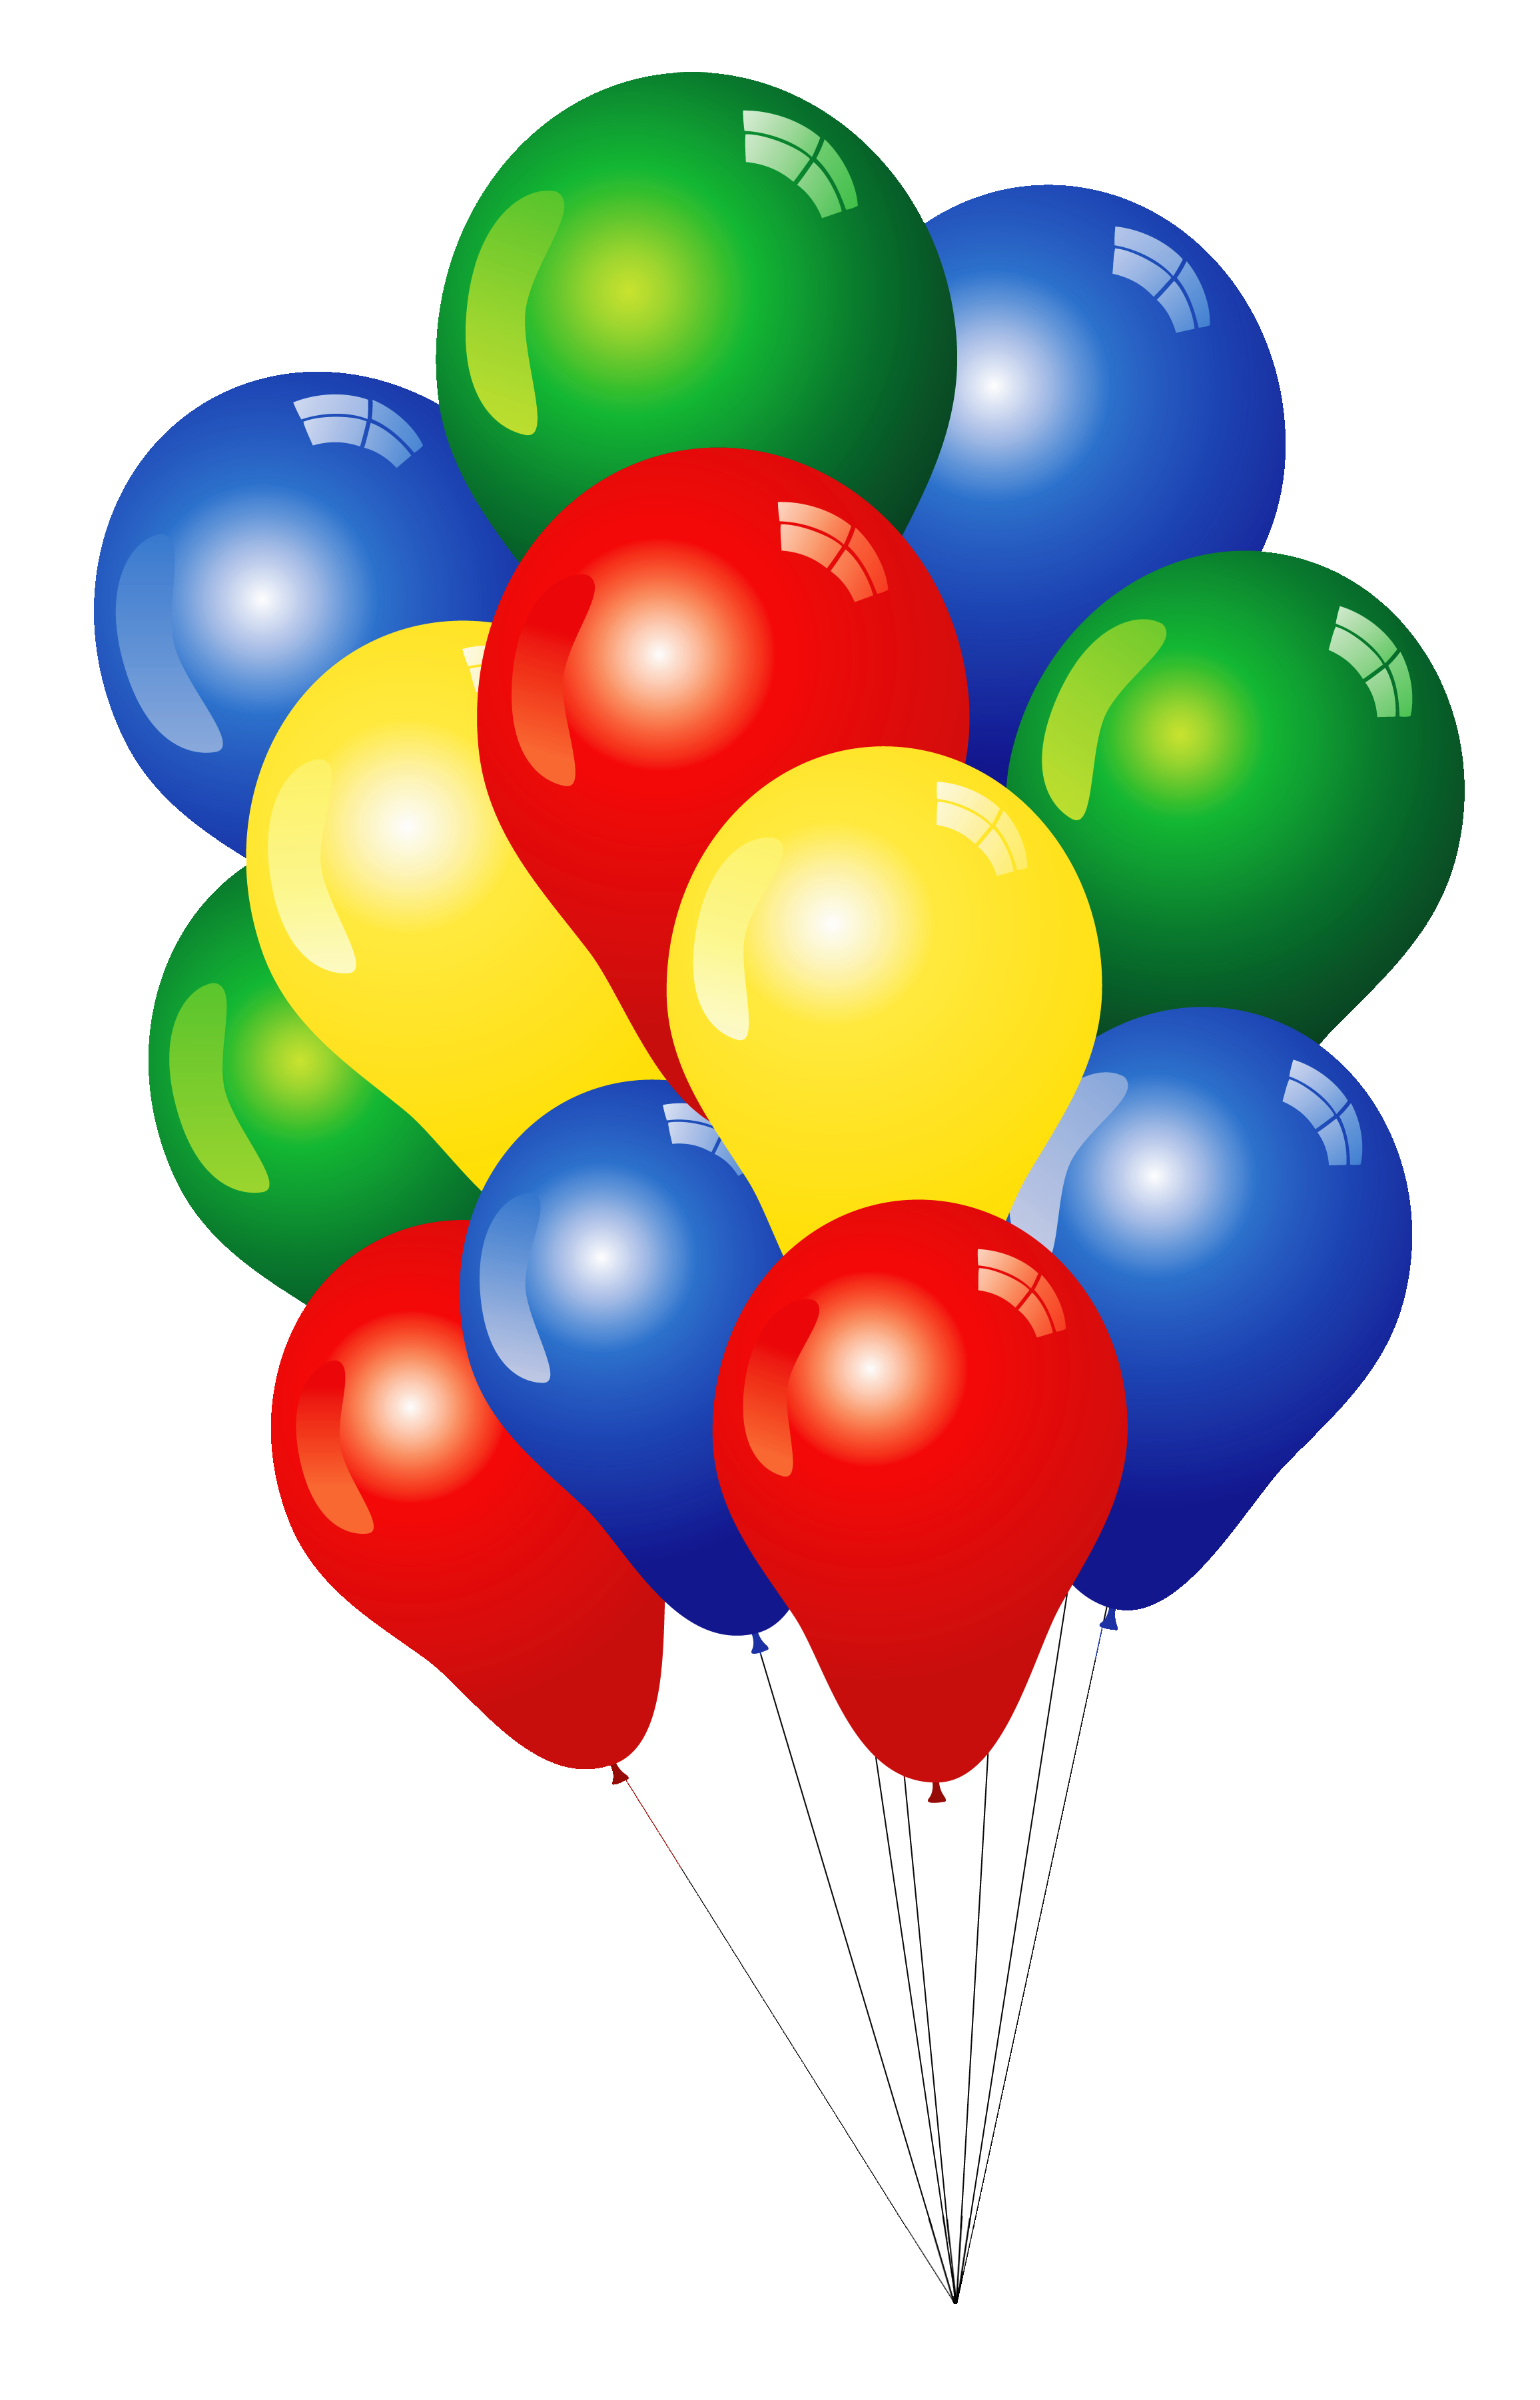 Balloons clipart microsoft png freeuse stock Free Microsoft Cliparts Balloons, Download Free Clip Art, Free Clip ... png freeuse stock